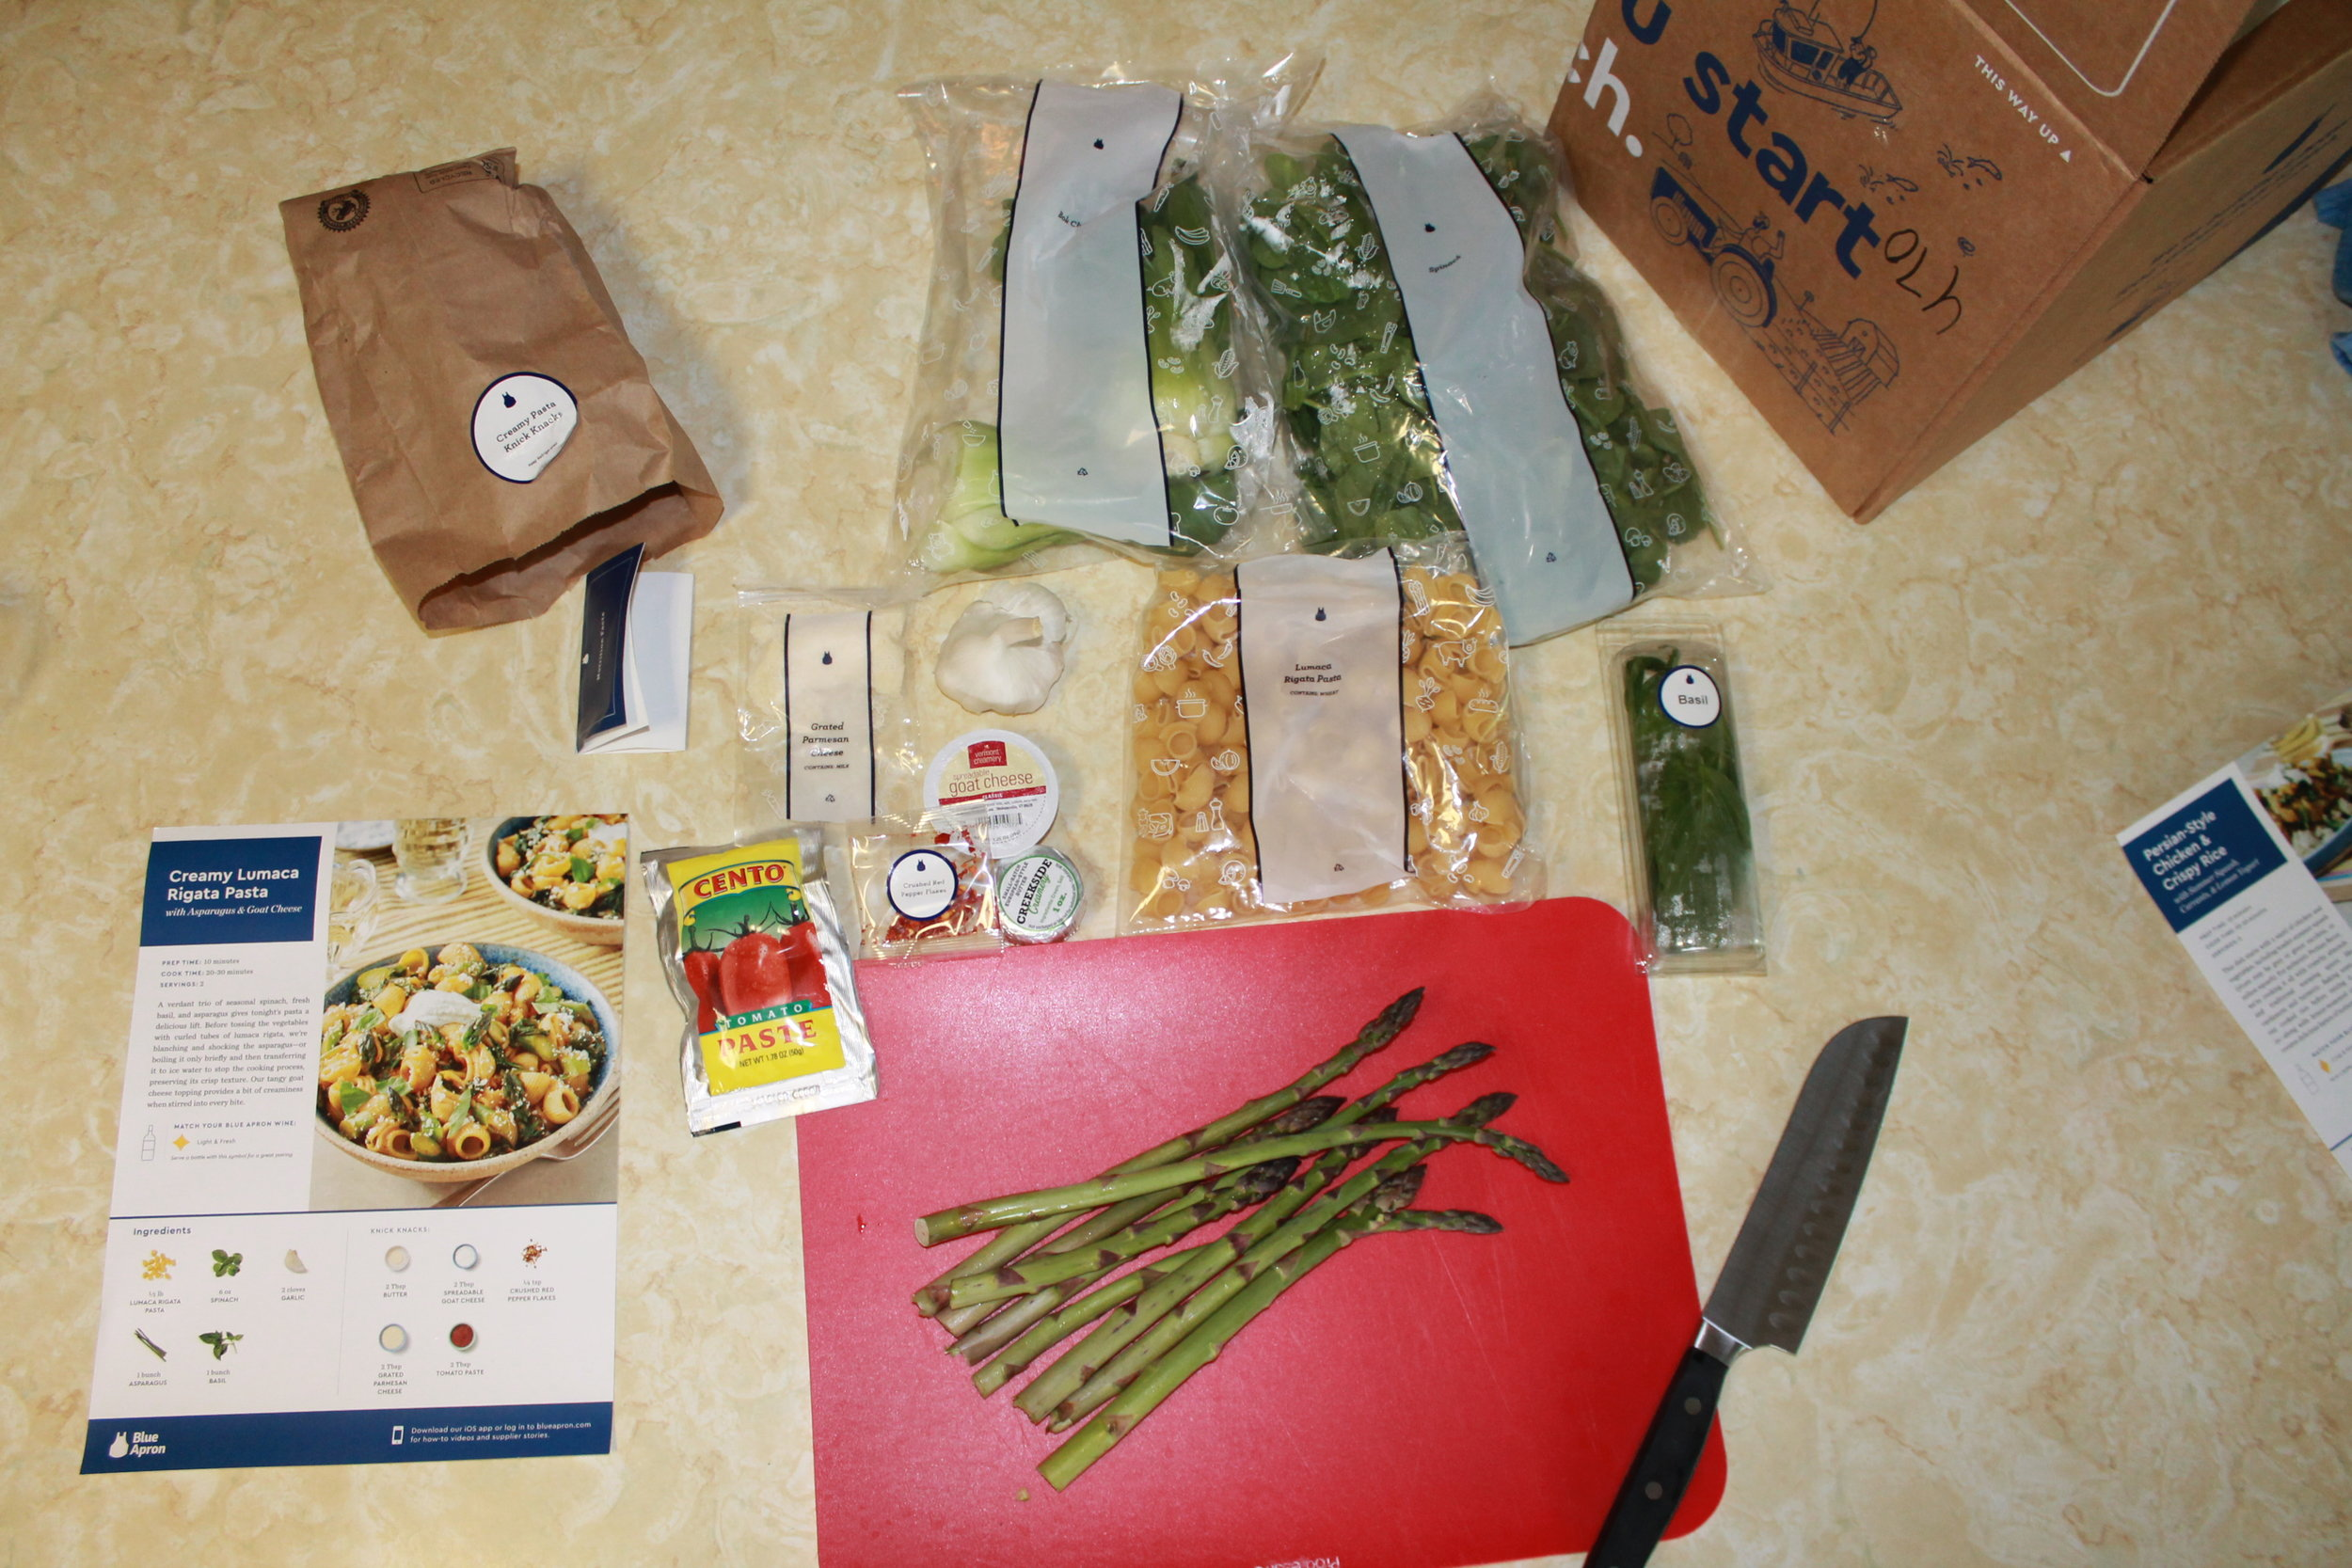 The prep! I'm so surprised that shipped veggies look, feel and taste this fresh!